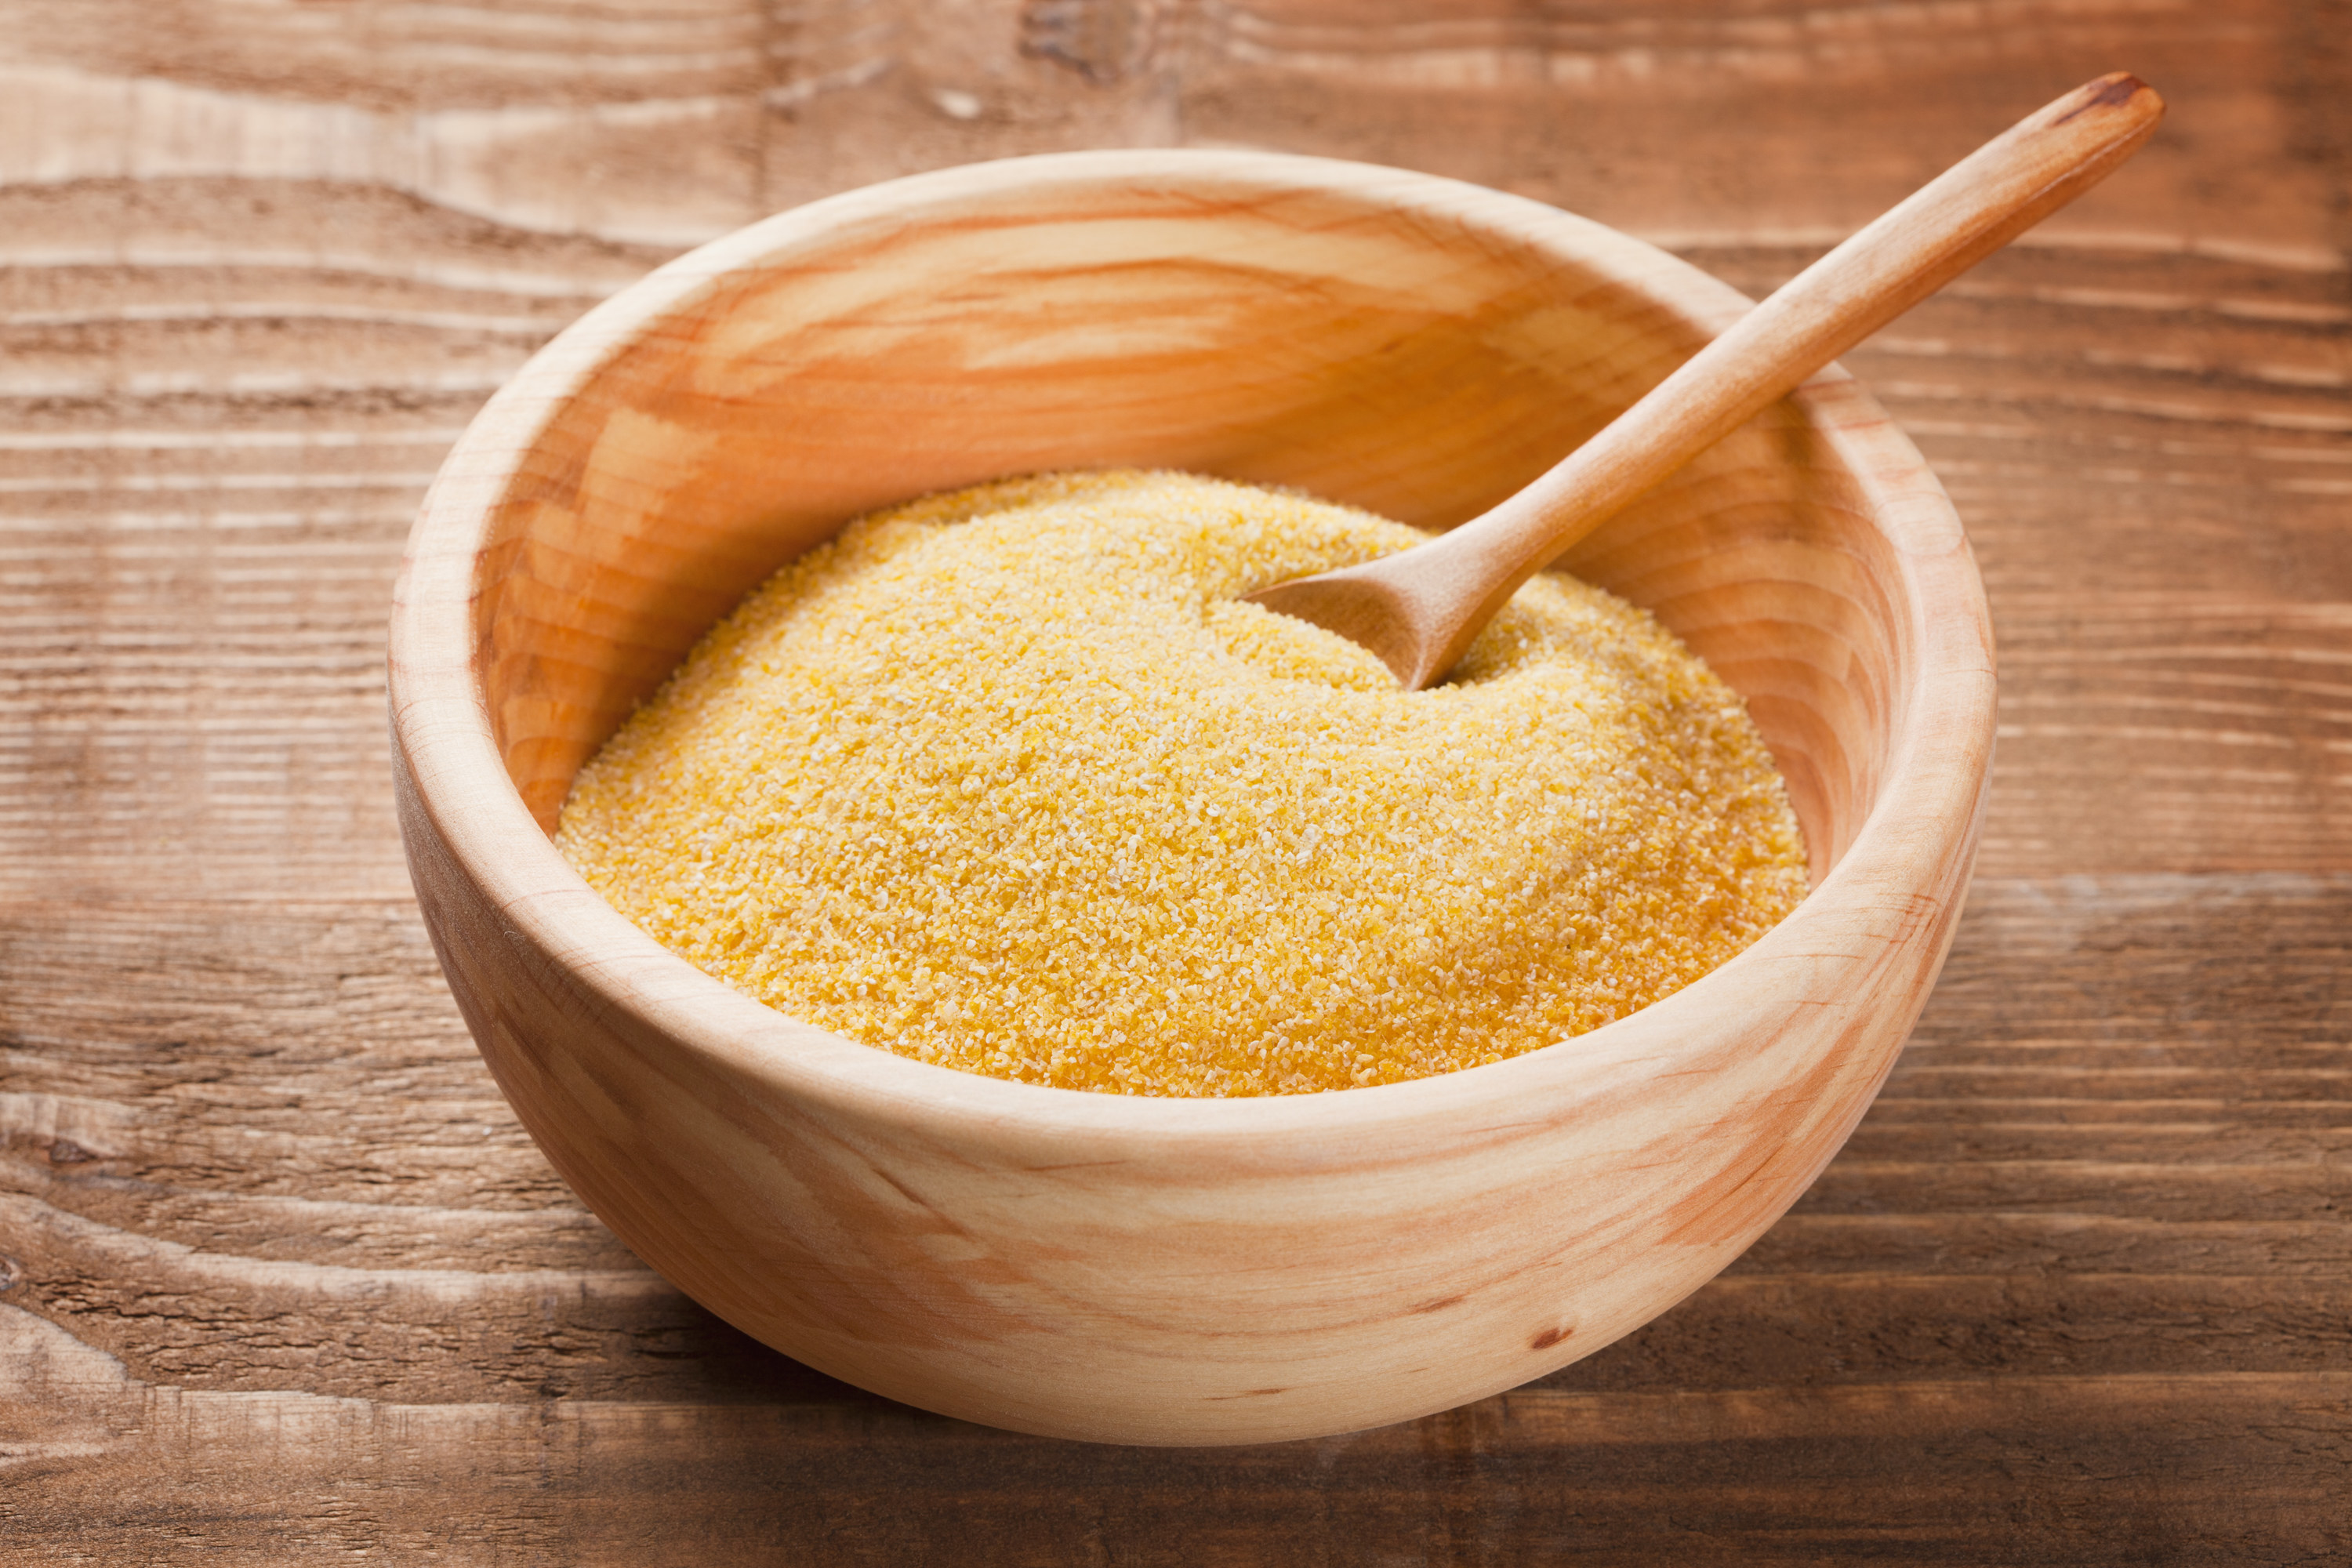 Corn grits in wooden dish with wooden spoon on the wooden rustic table